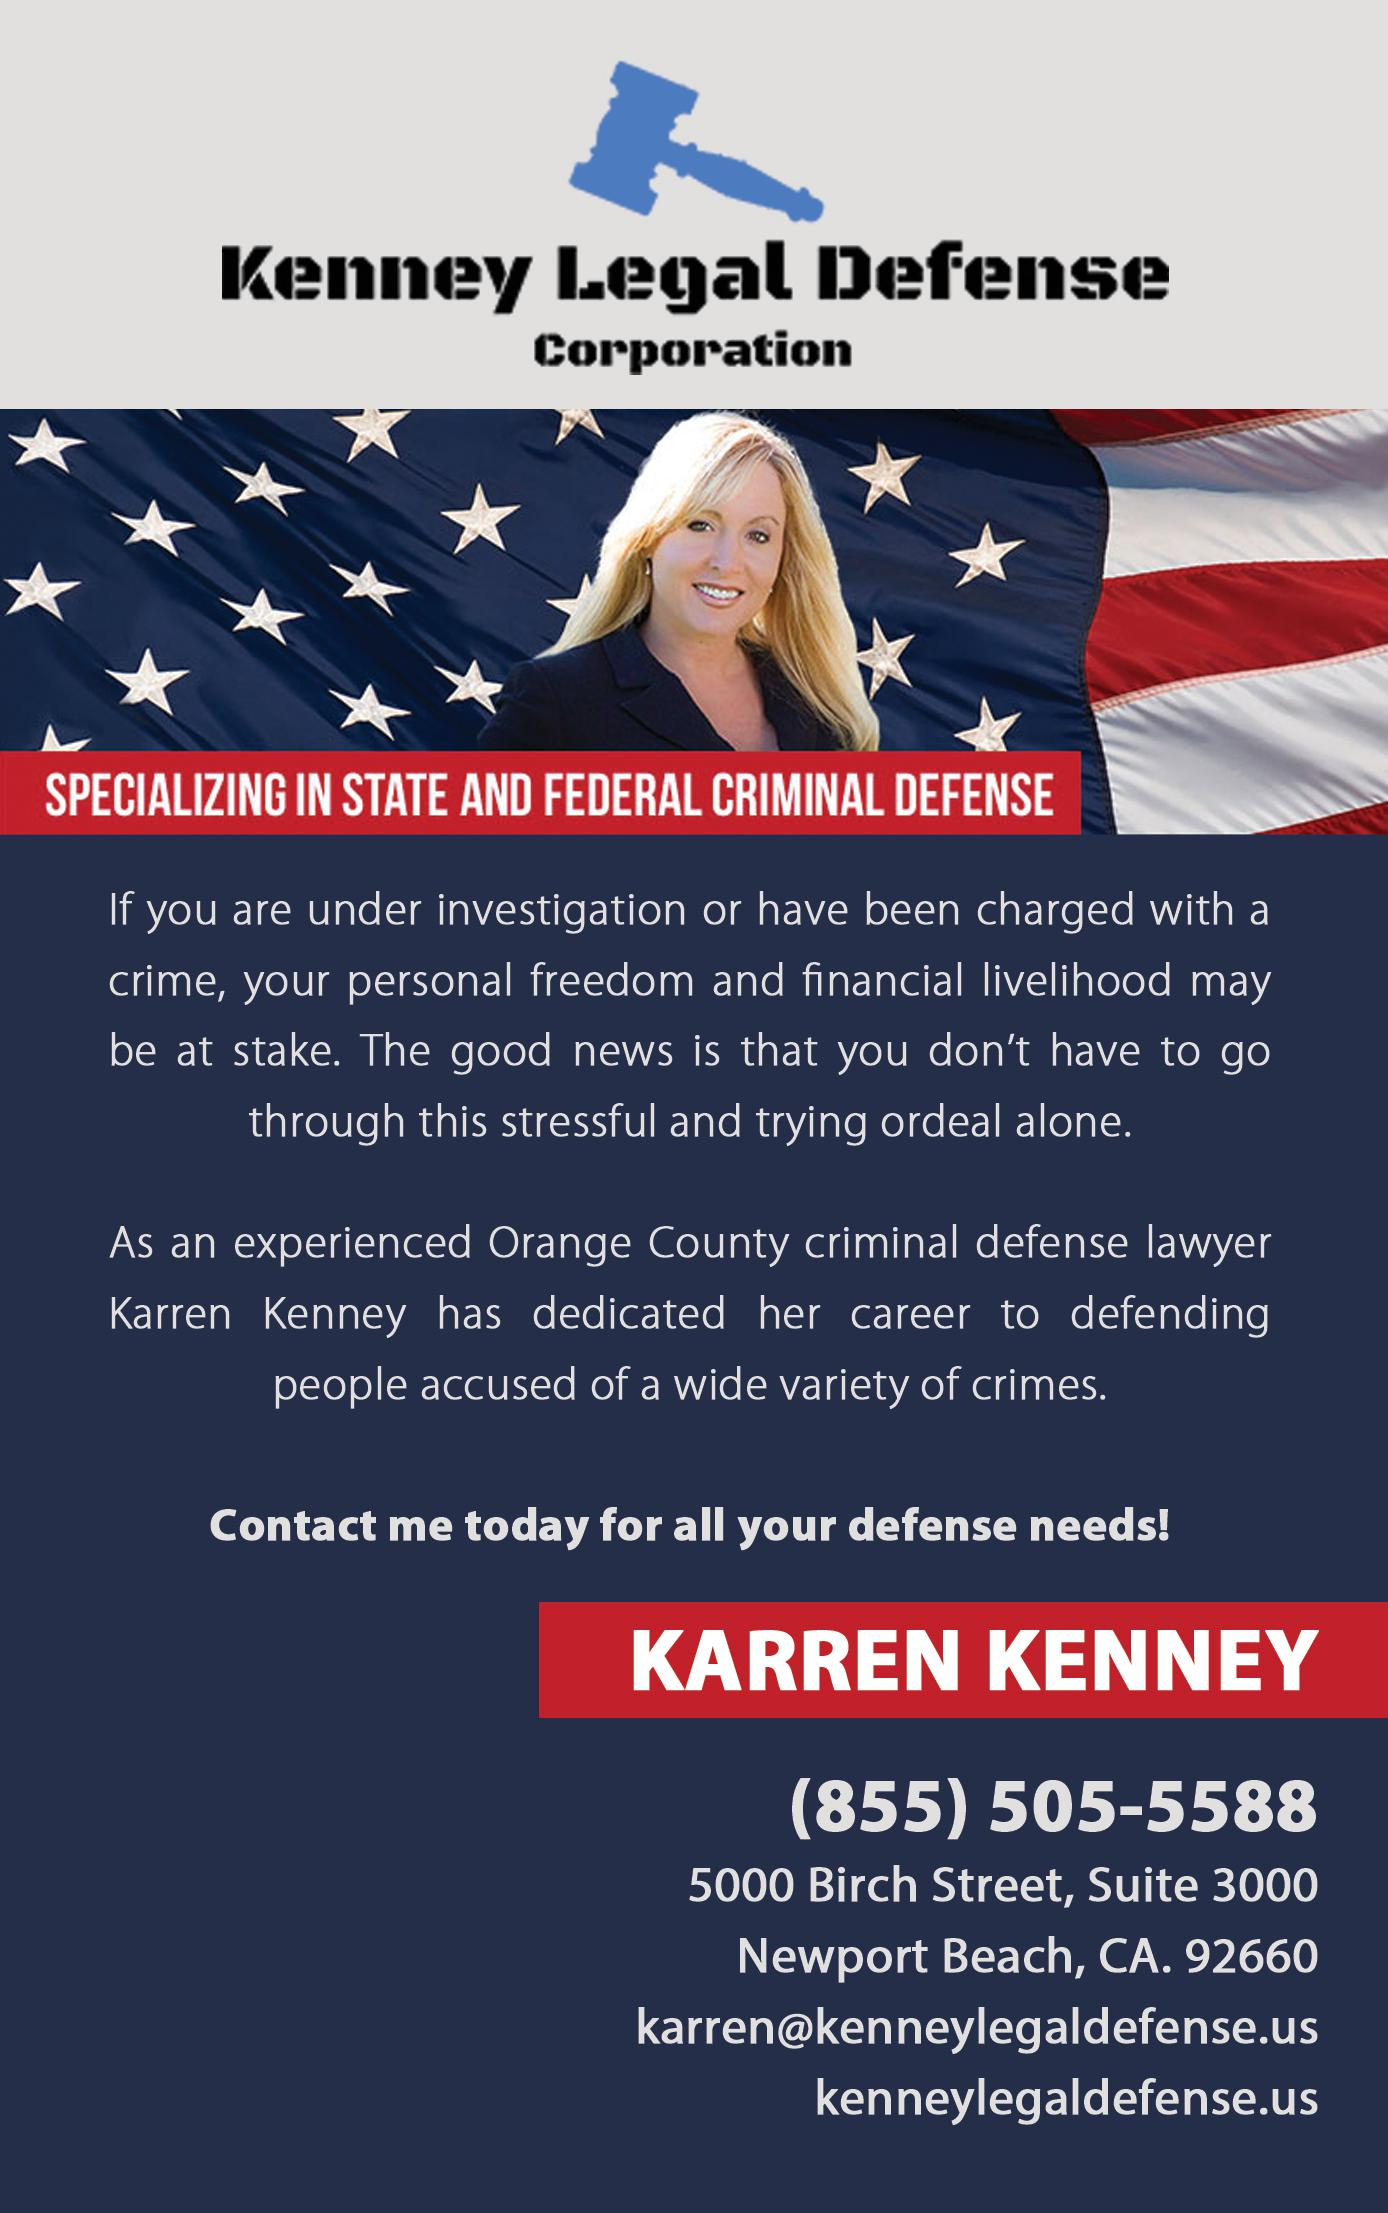 Kenney Legal Defense Corporation